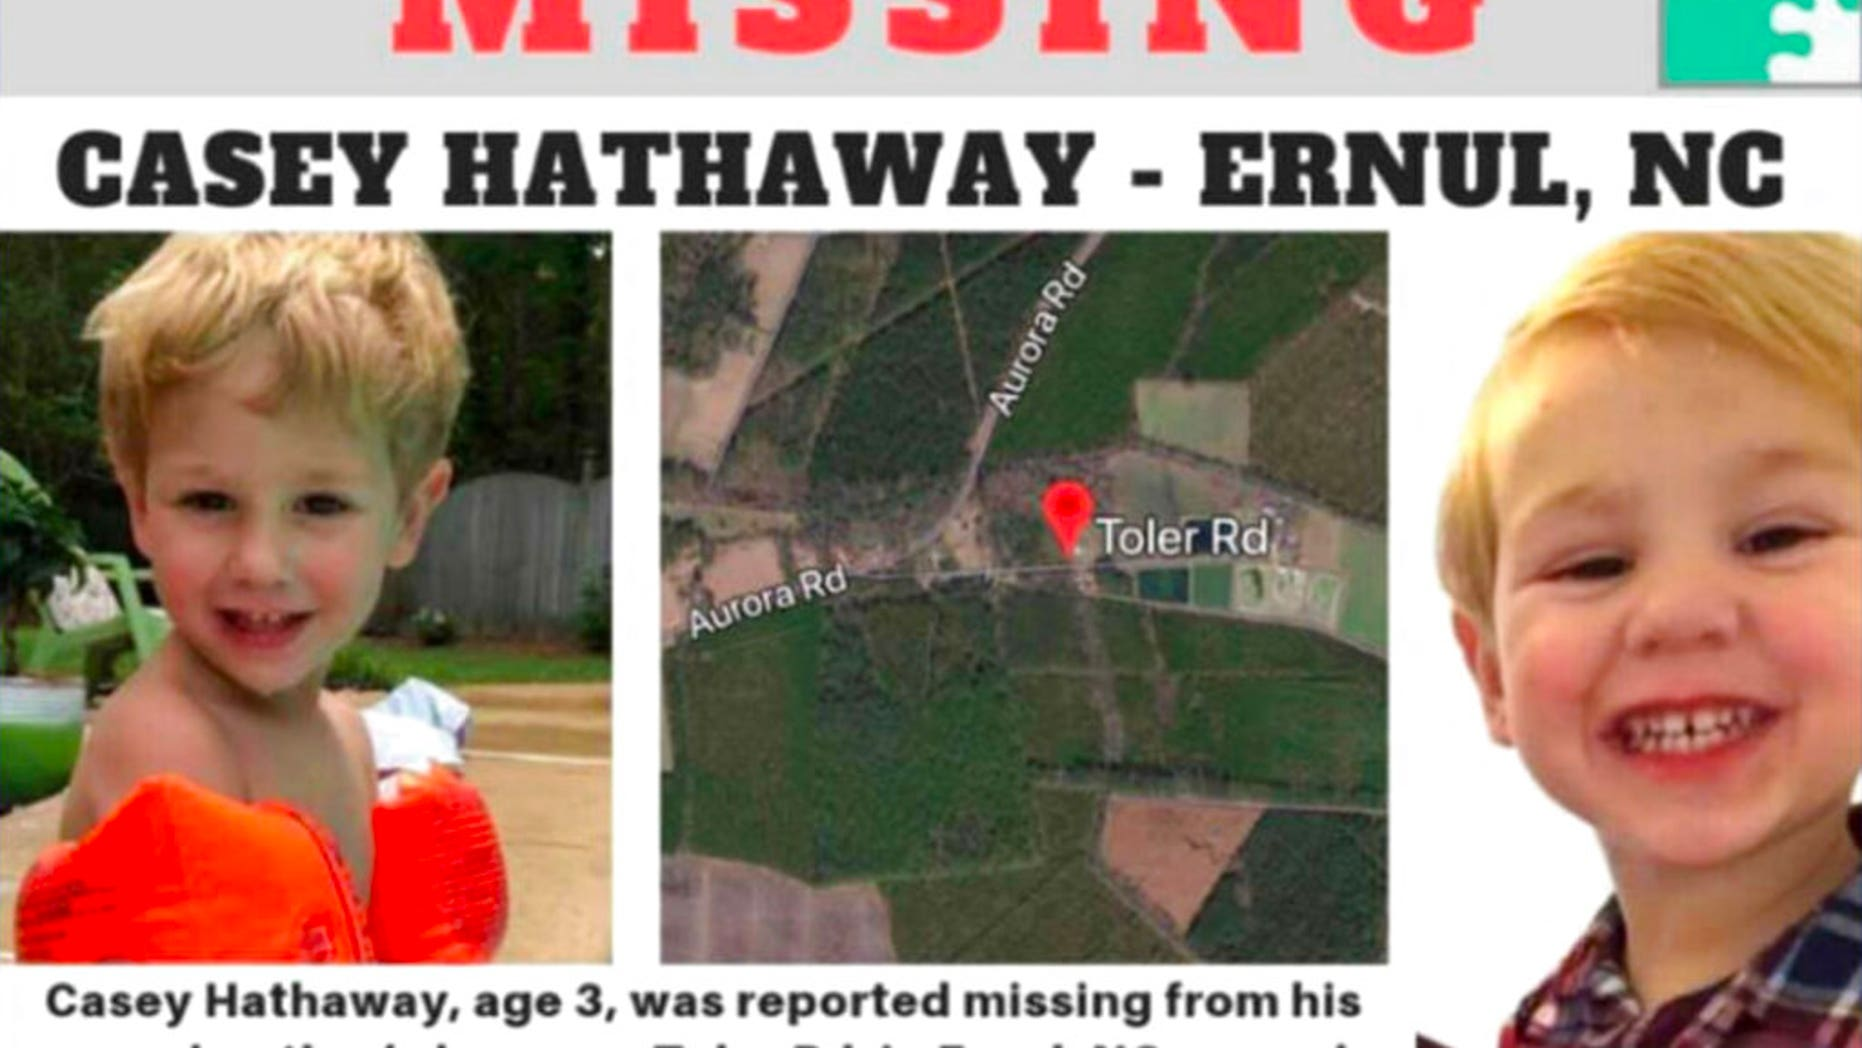 Did a Bear Help Missing Boy Casey Hathaway? His Family Says So